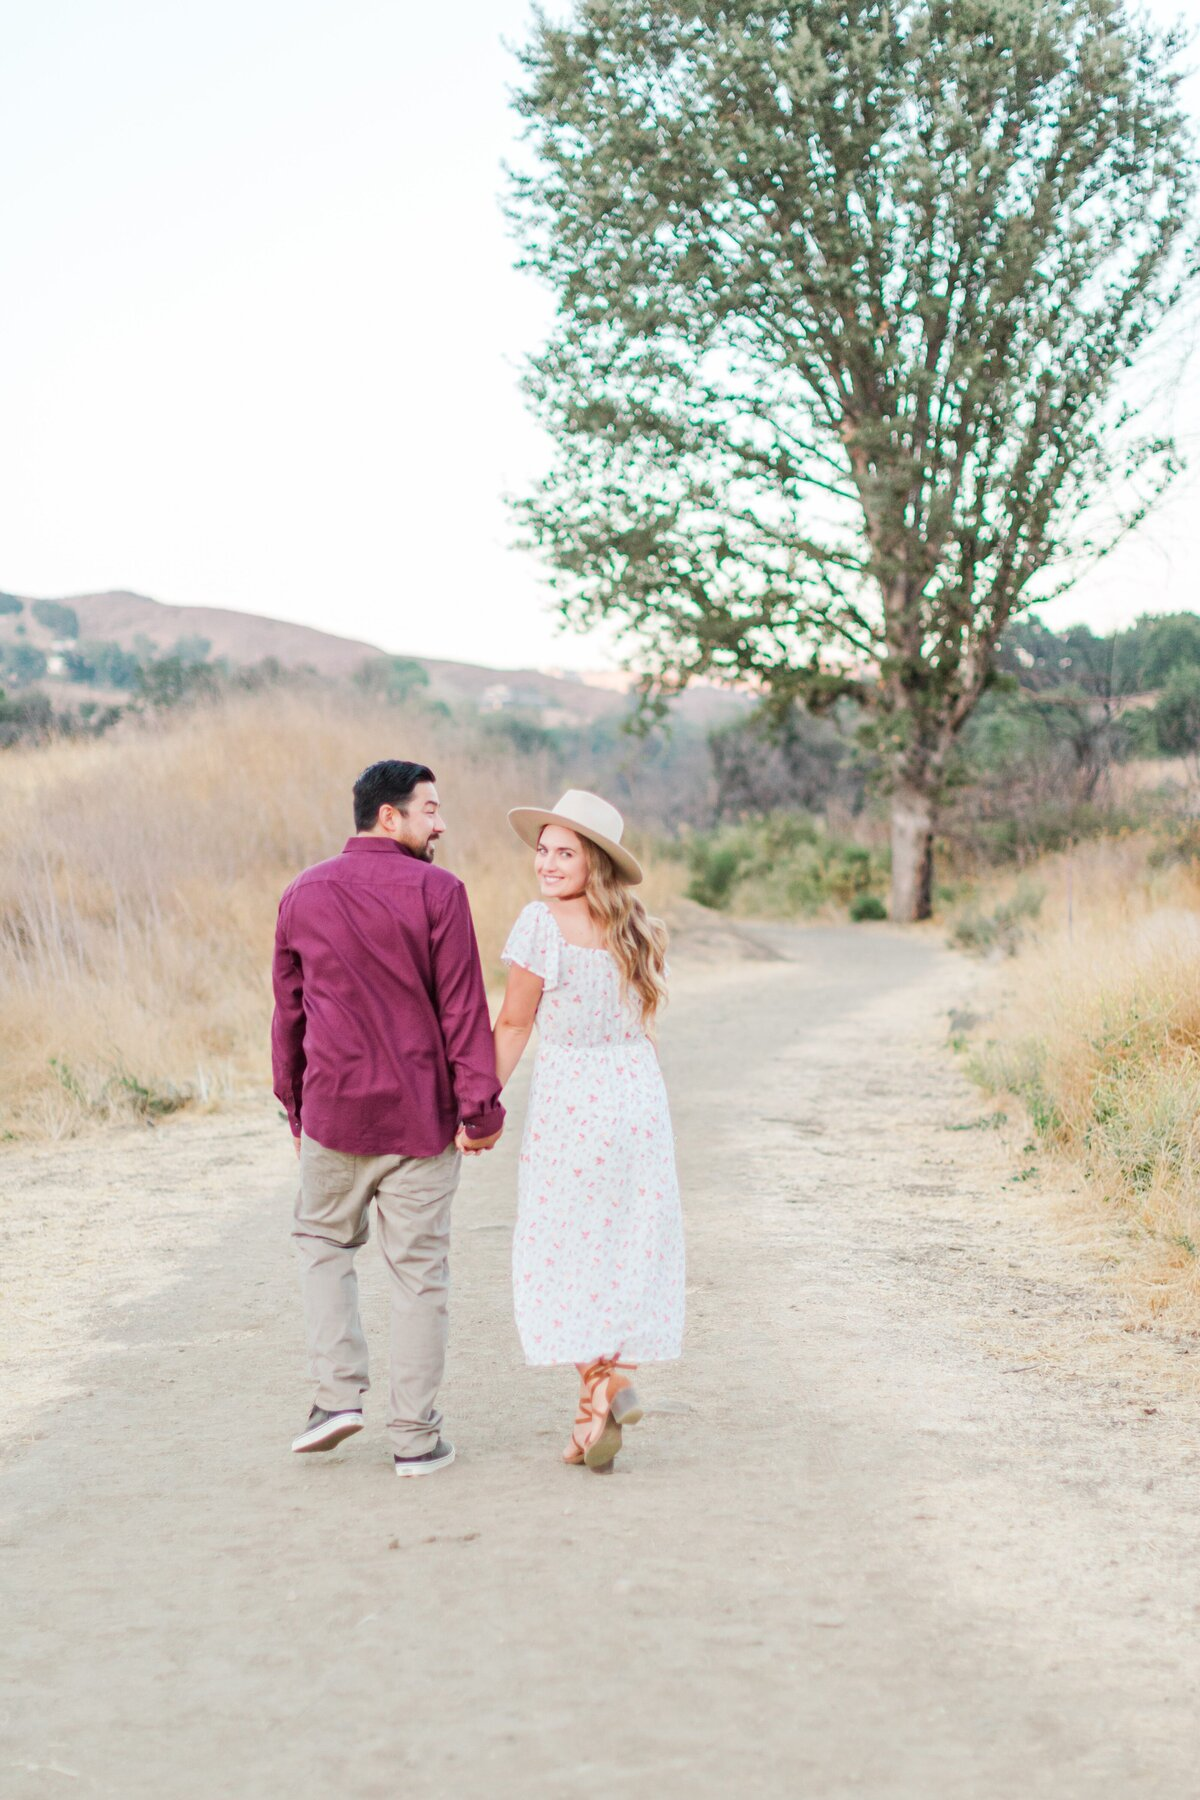 blog-Malibu-State-Creek-Park-Engagament-Shoot-boho-0085